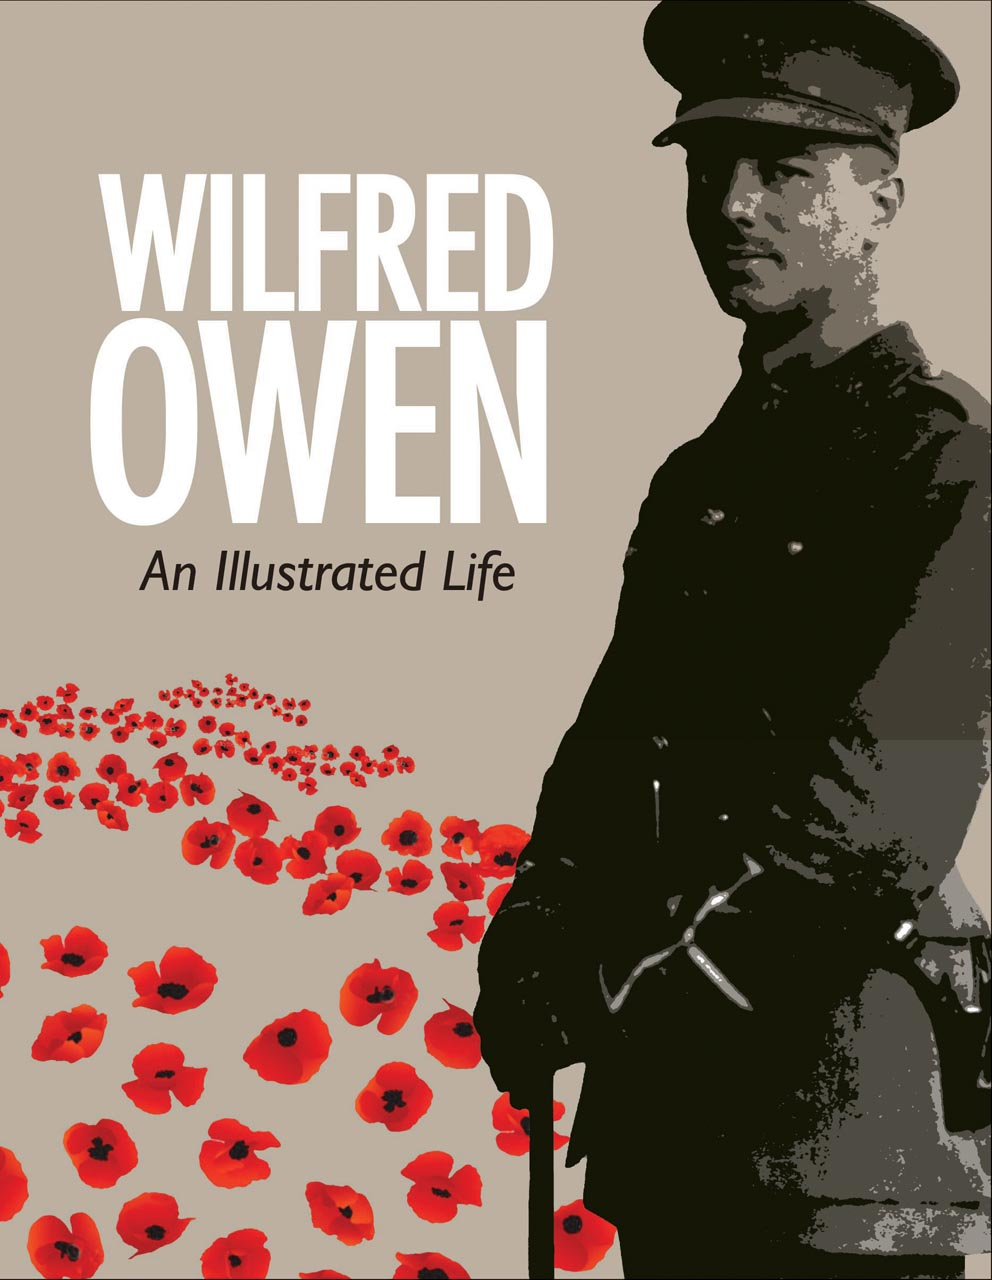 the poetr of wilfred owen speech Wilfred owen wilfred edward salter owen mc (18 march 1893 – 4 november 1918) was an english poet and soldier, one of the leading poets of the first world war.